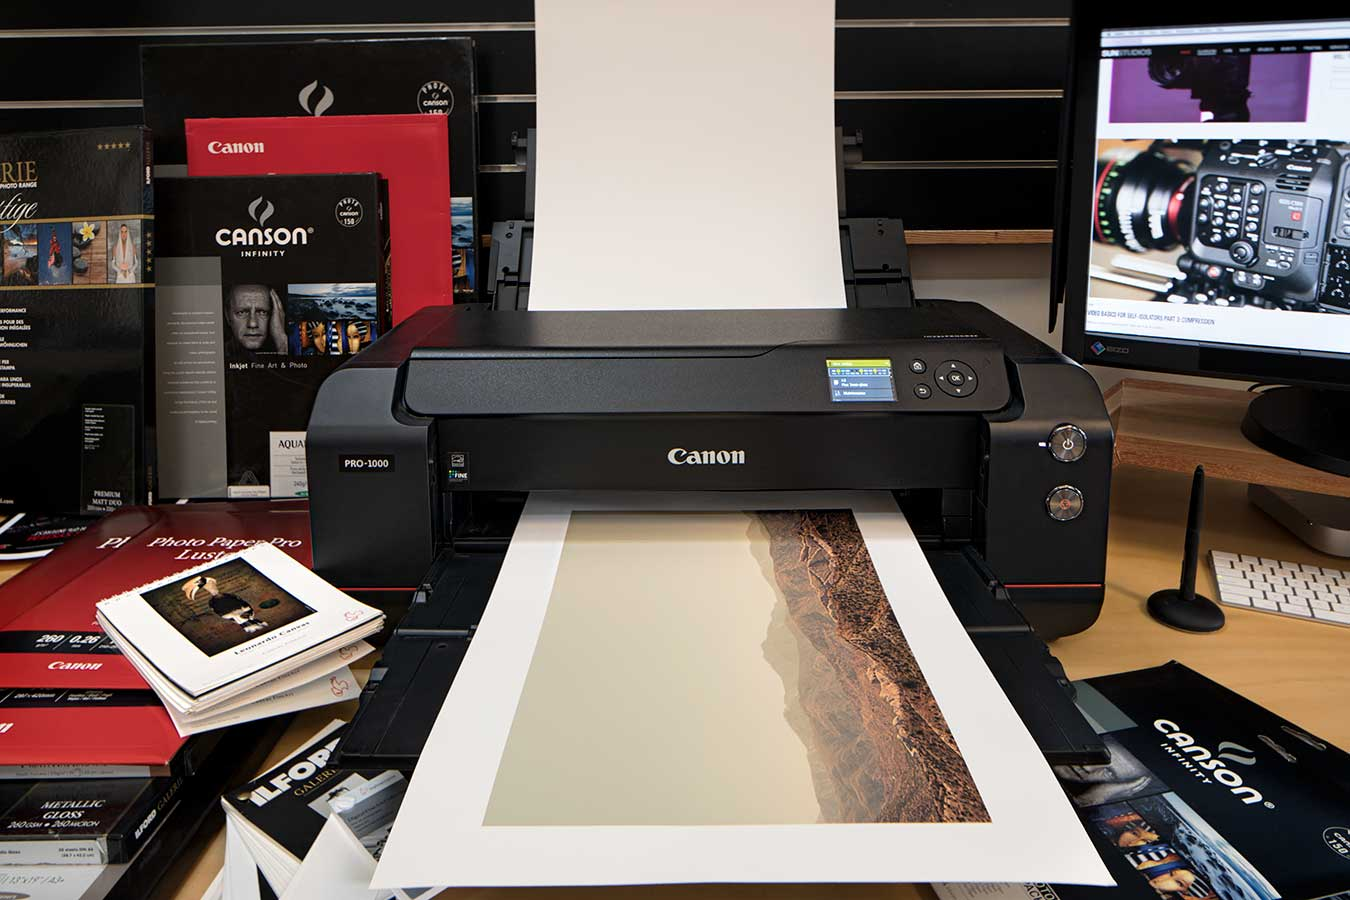 a-canon-pro-1000-printer-mid-print-of-a-landscape-surrounded-by-paper-and-inks